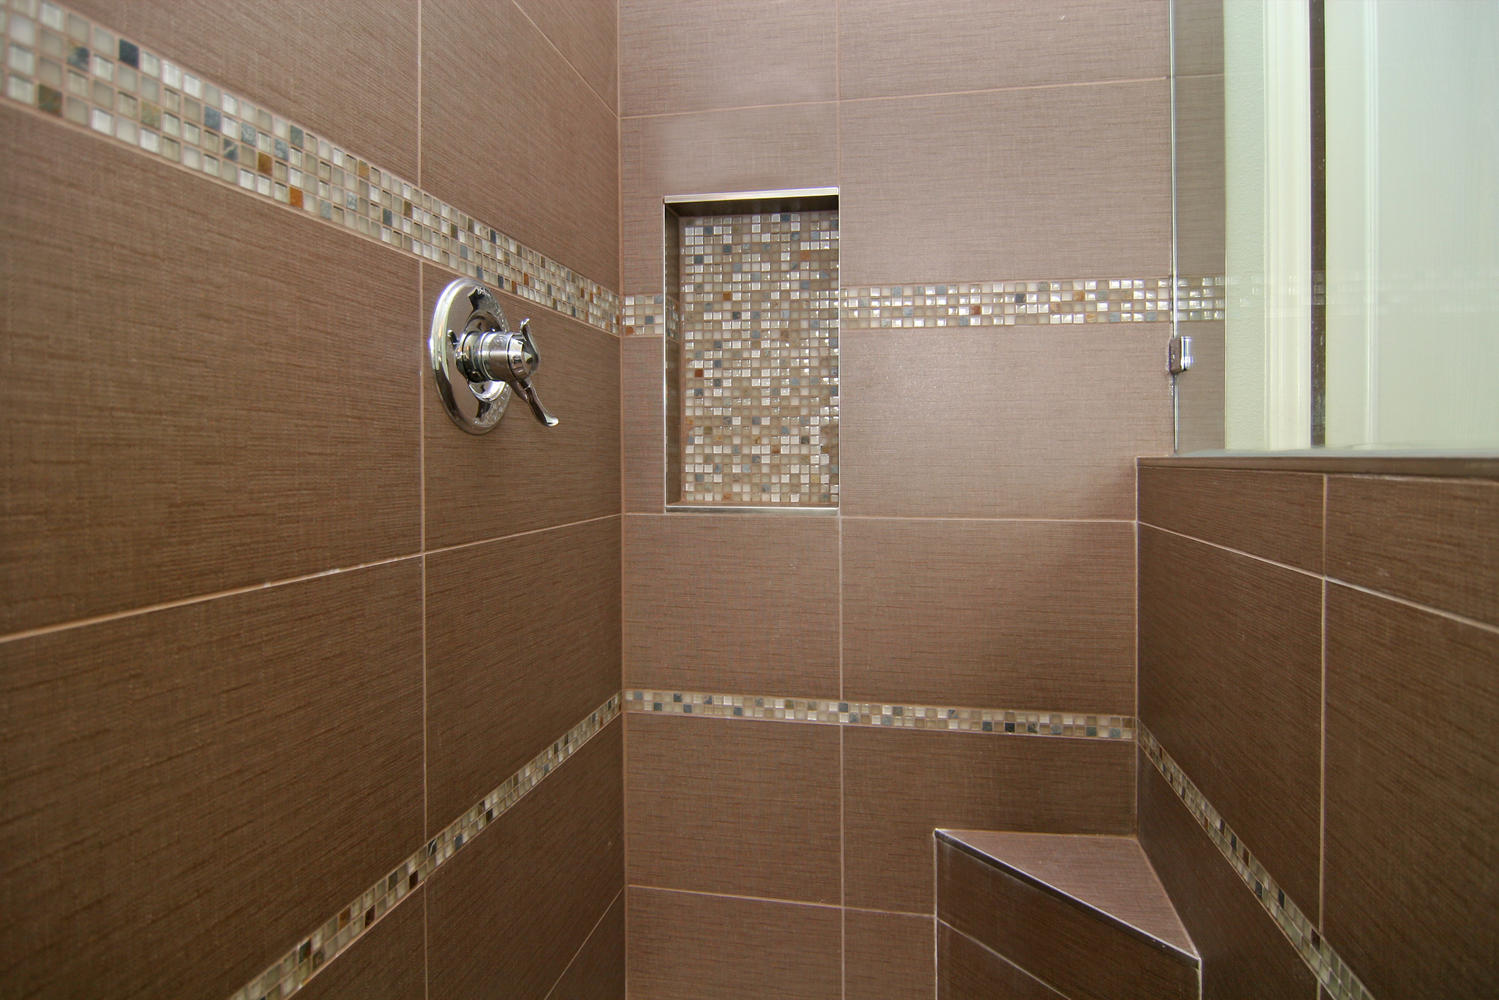 Decorate Walk In Shower Space With Planted Wall Shelf And Cream Shower Tile  Designs Near Glass